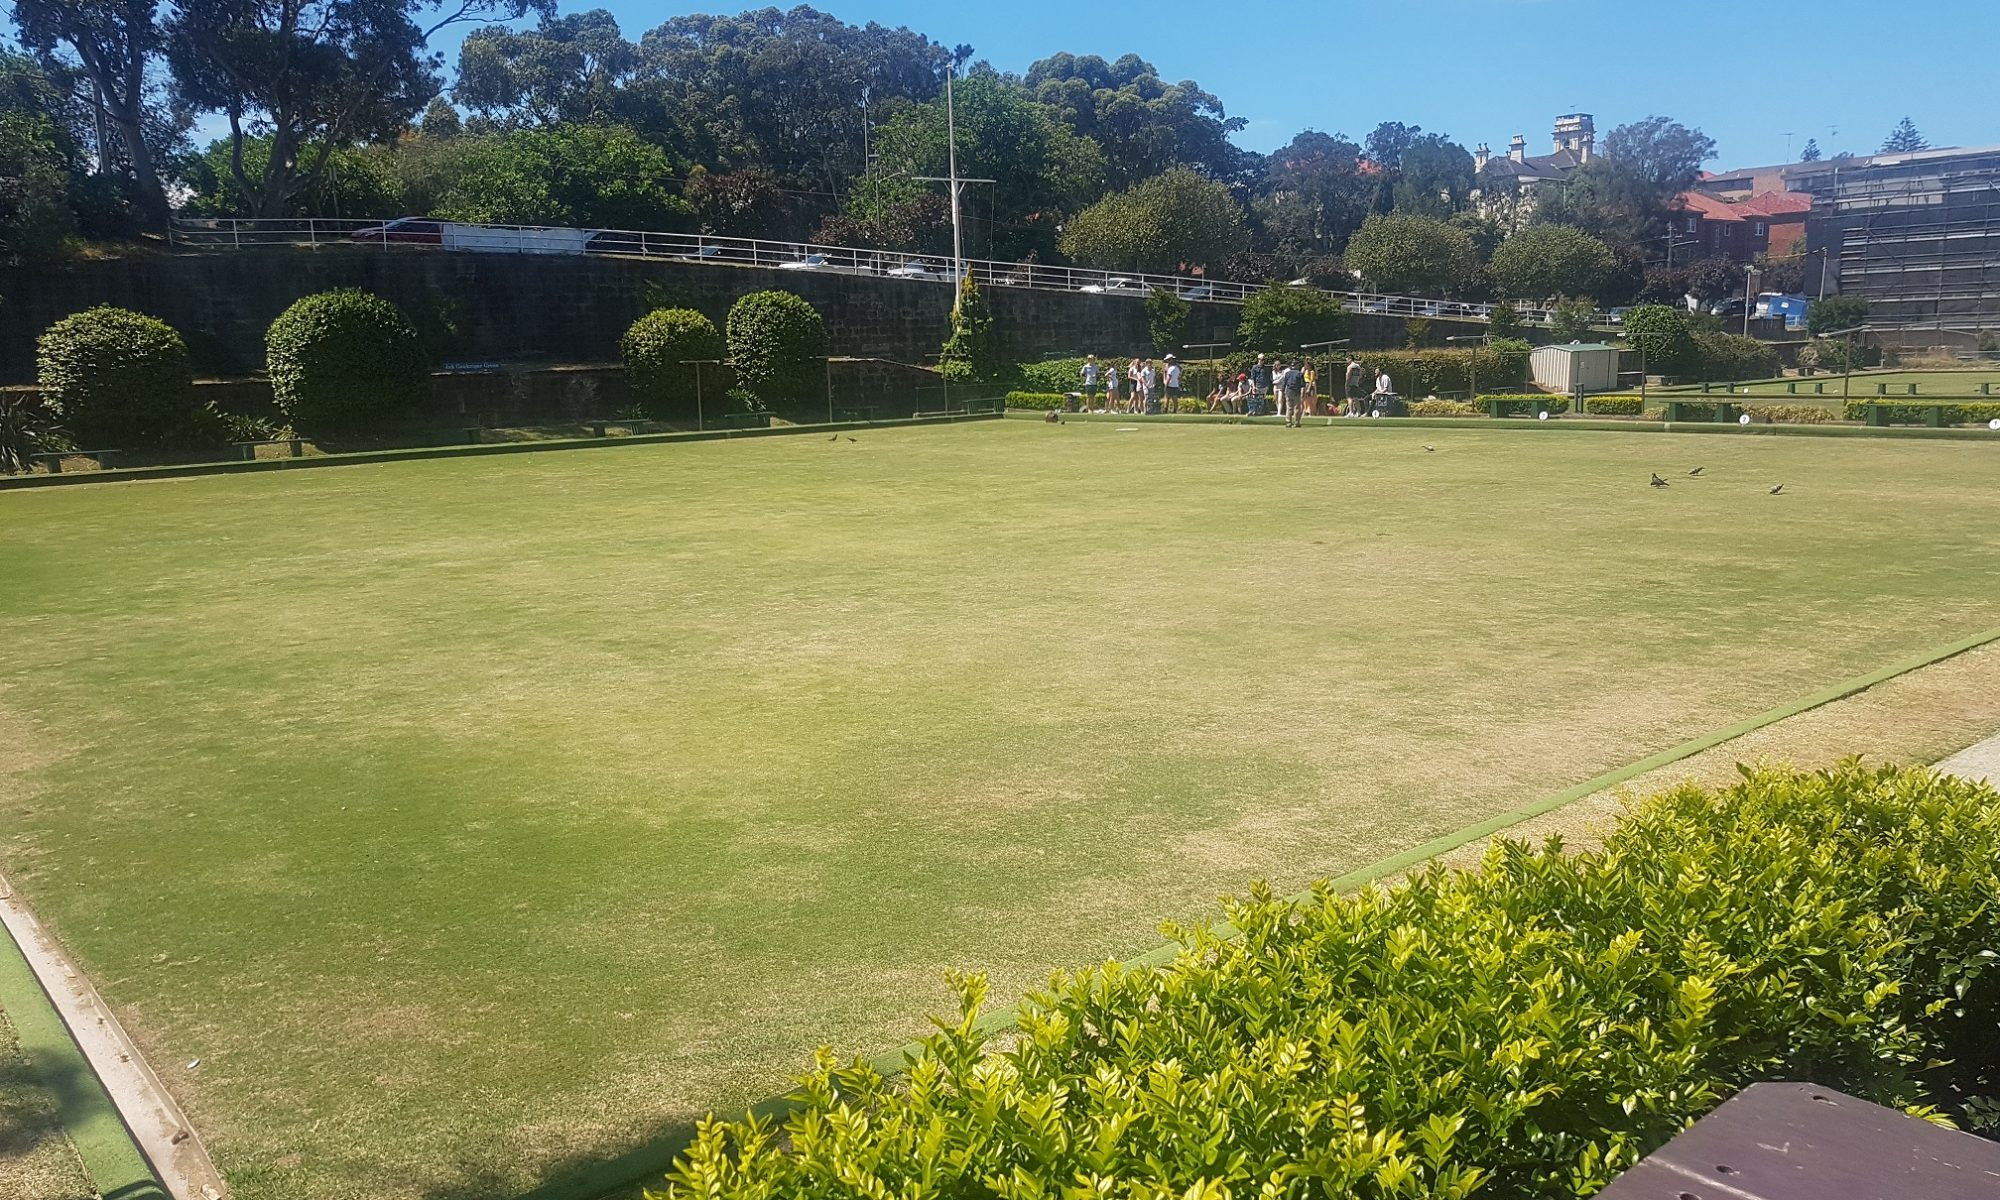 Contact Coogee Beach Club Lawn Bowls Green